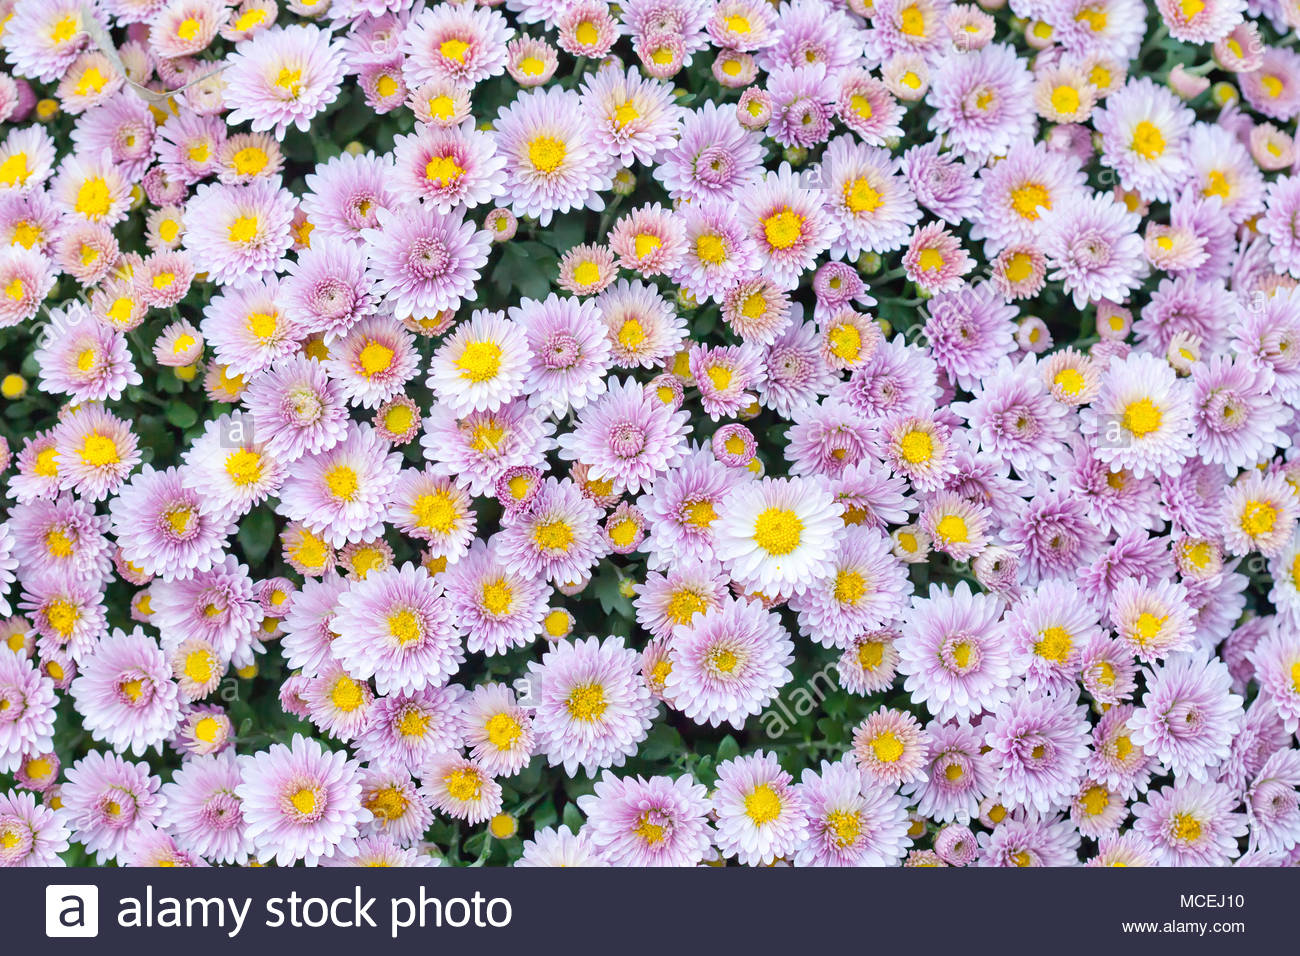 Violet pink yellow chrysanthemum flowers field background Floral 1300x956